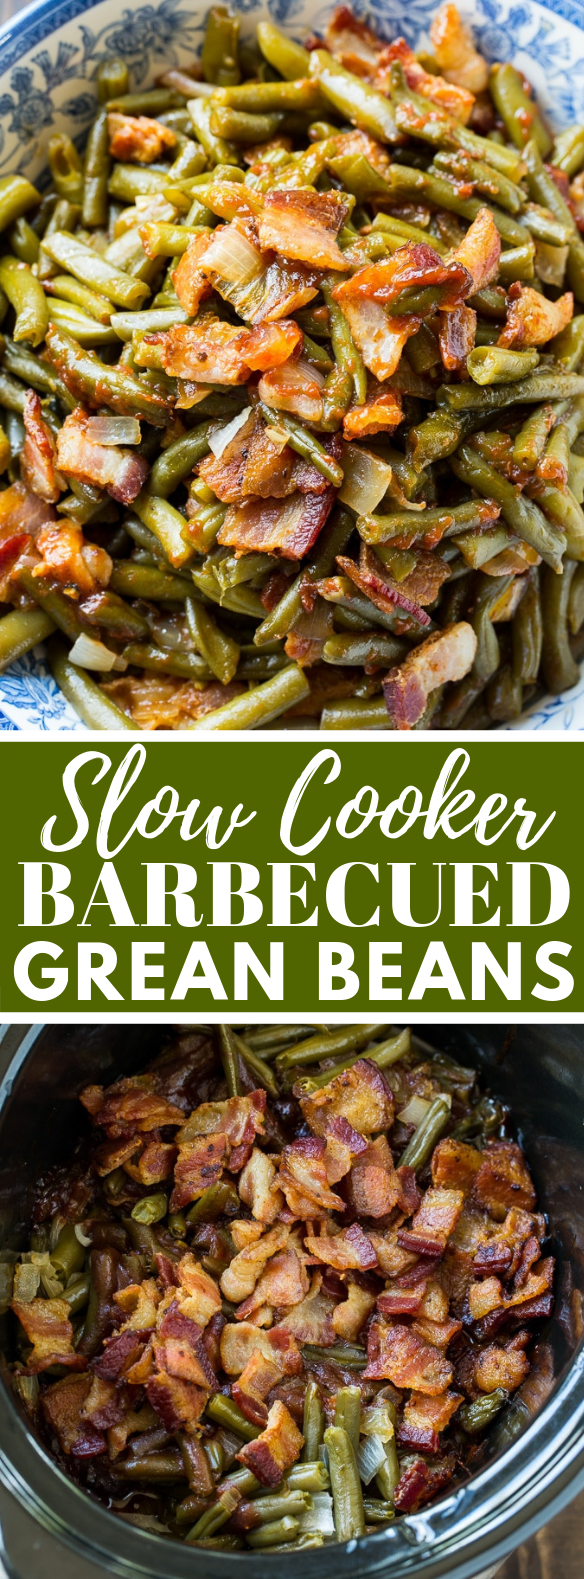 Slow Cooker Barbecued Green Beans #ketodiet #healthy